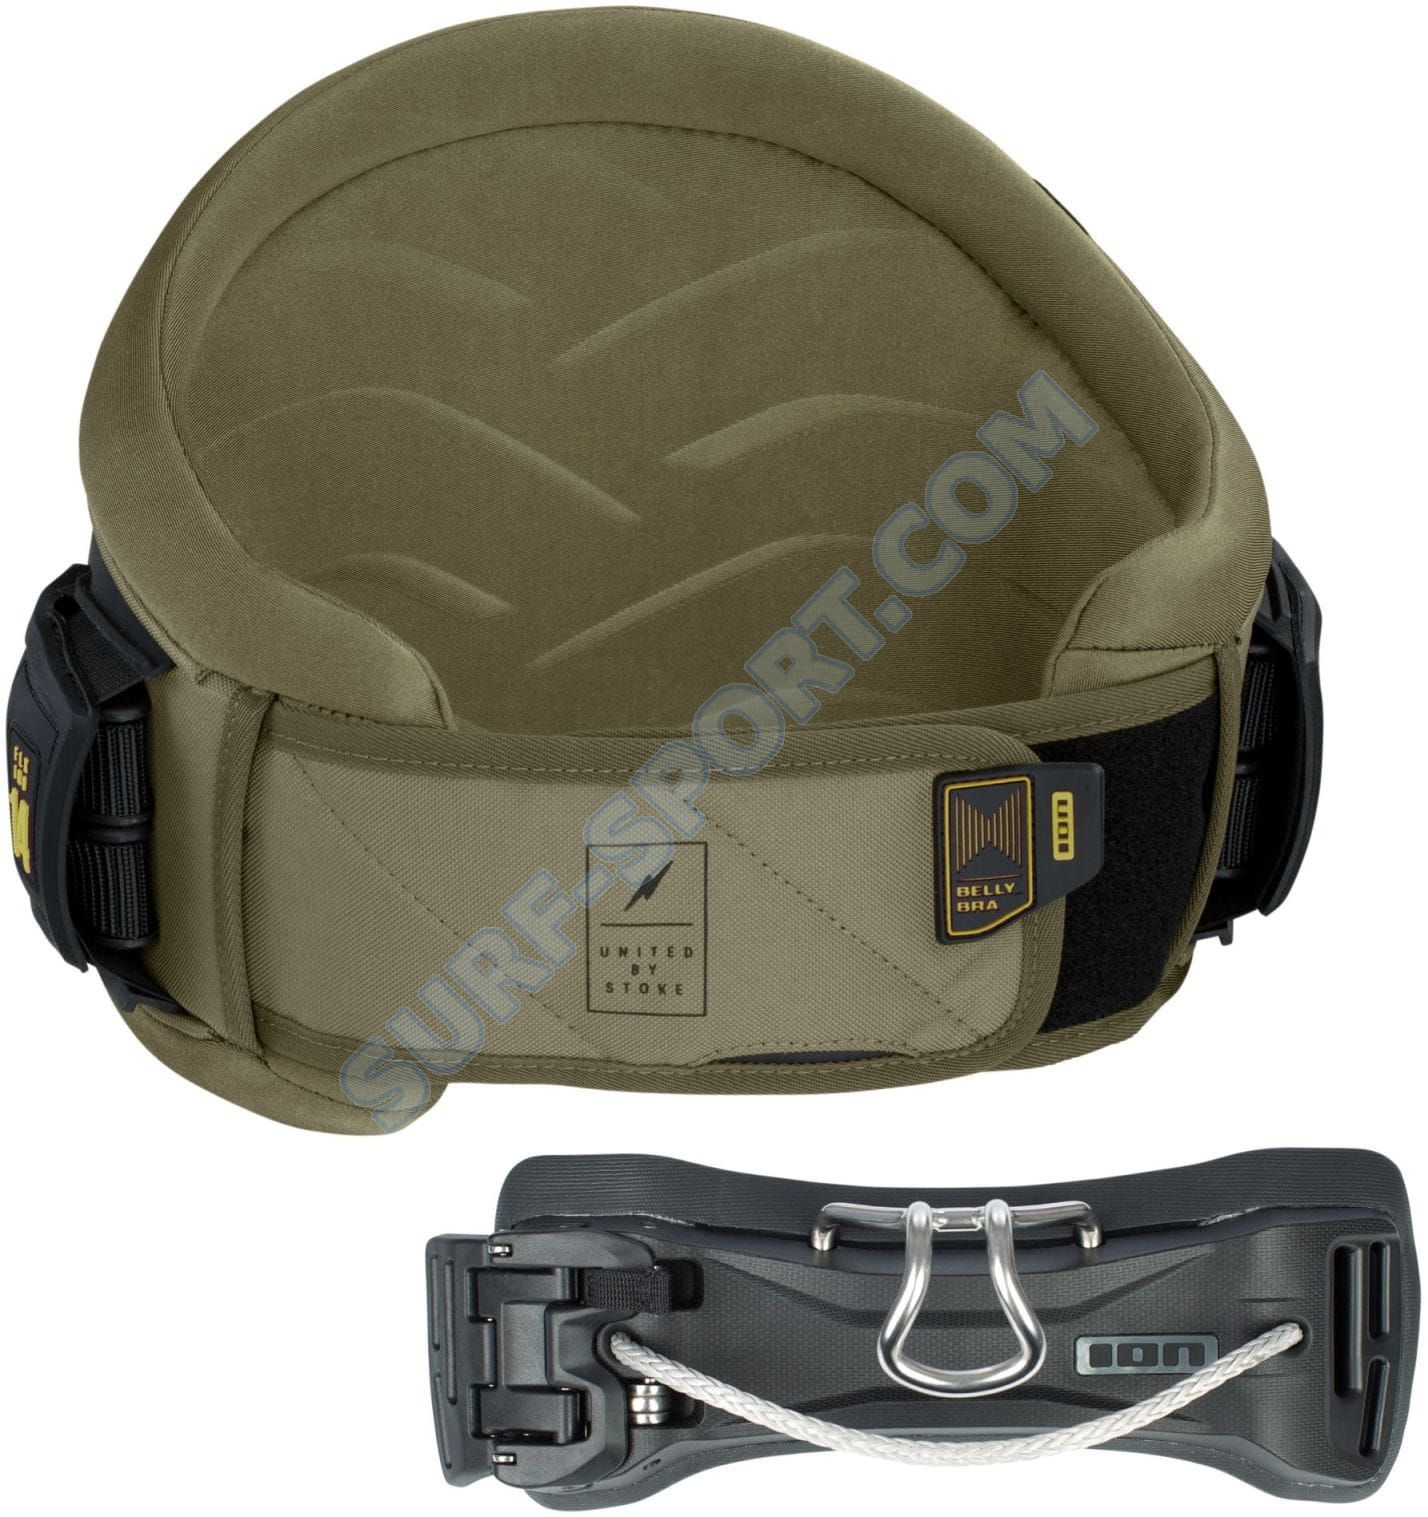 48202-4709-Trapez-Ion-Riot-Curv-14-kite-waist-harness-2020-Dark-Olive-front-side.jpg